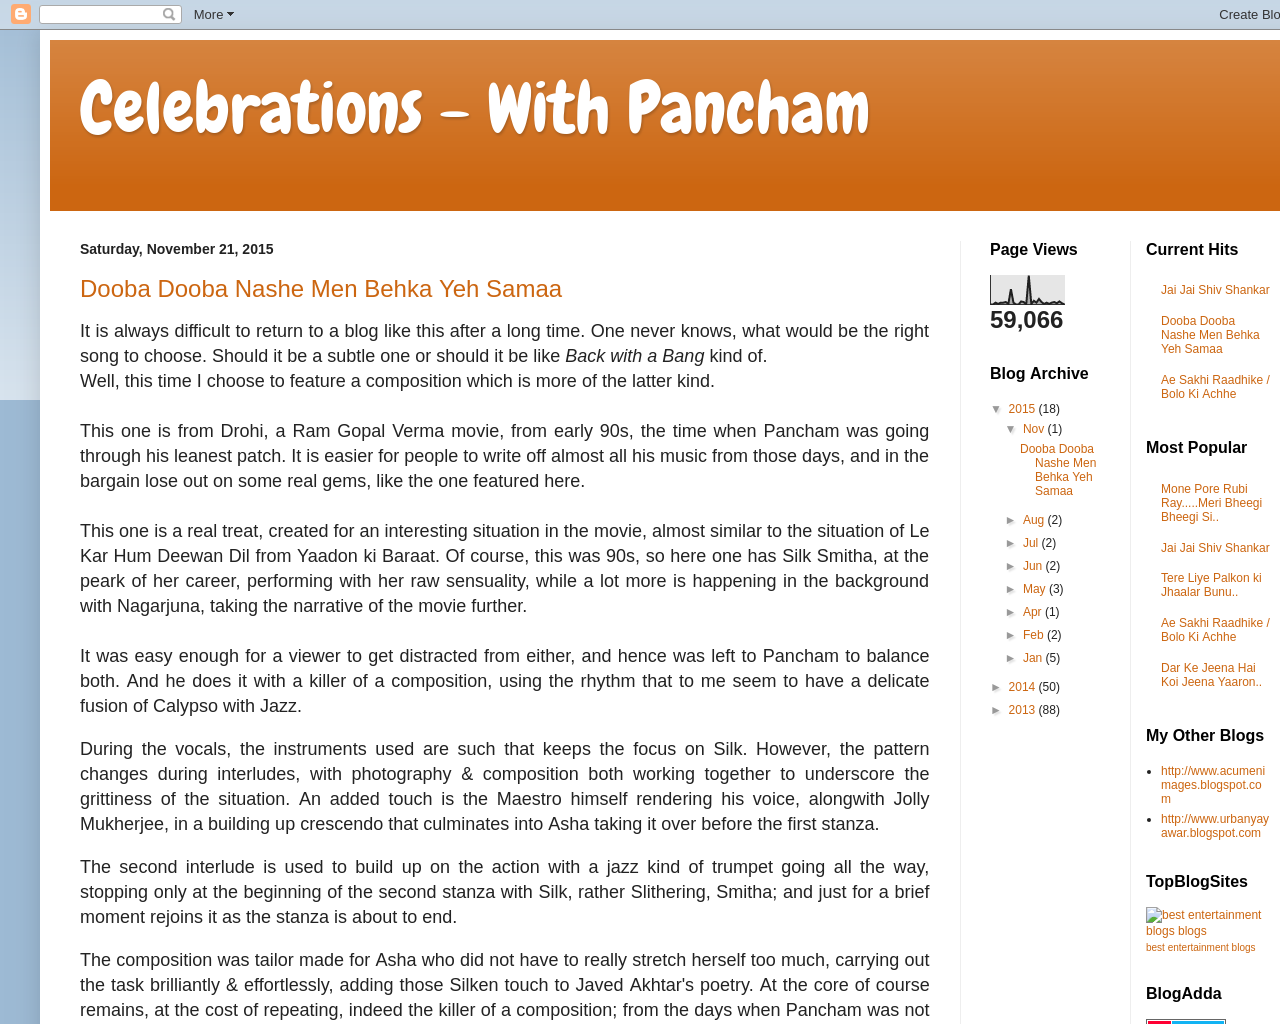 Celebrations - With Pancham